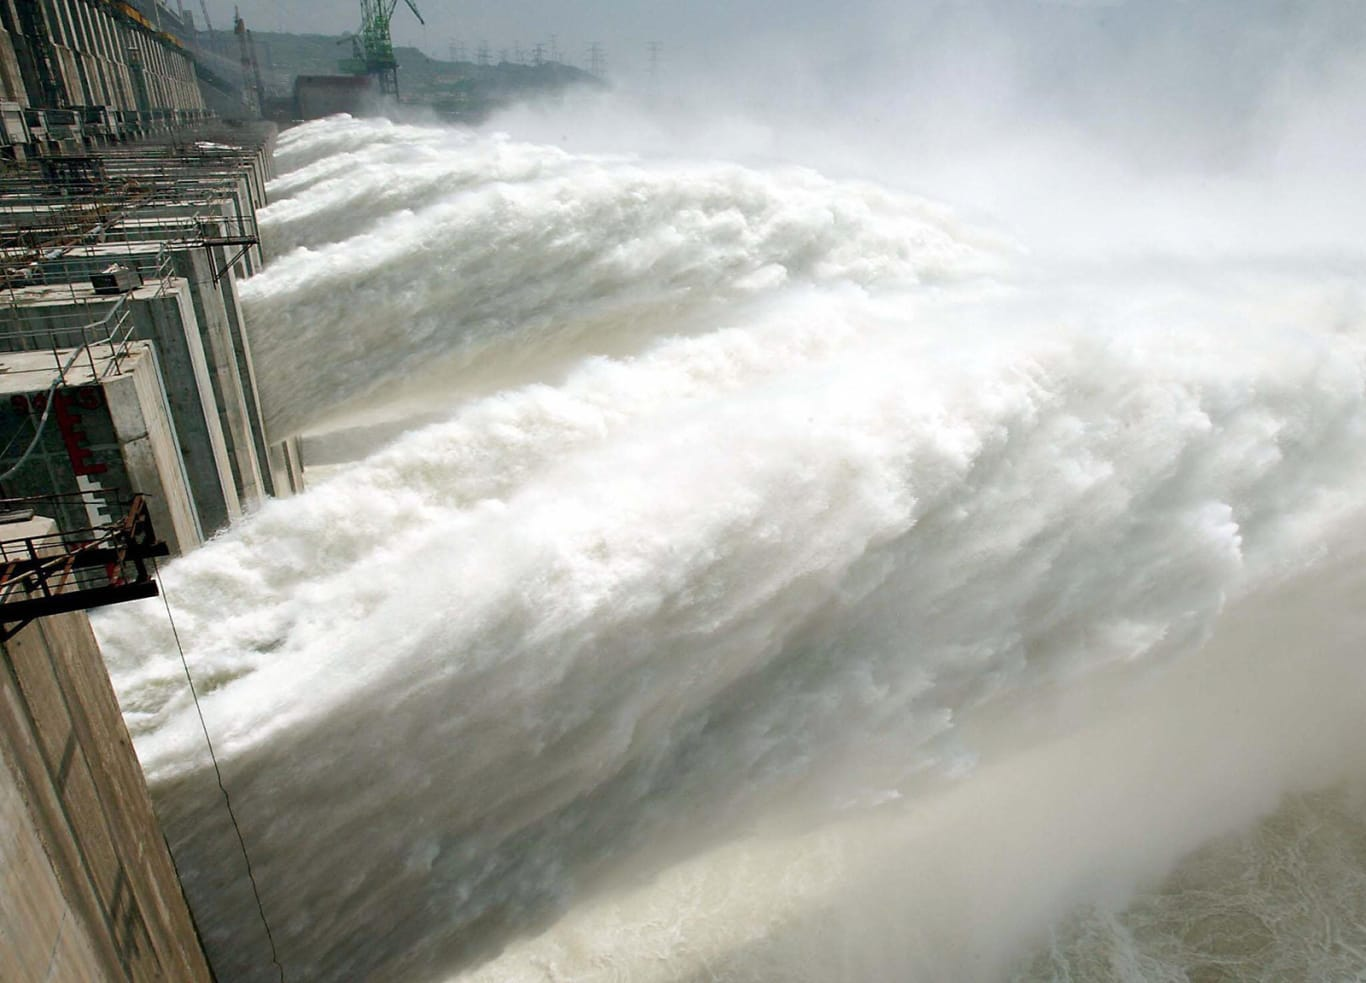 Water gushes out for the first time through the Three Gorges Dam on June 11, 2003.